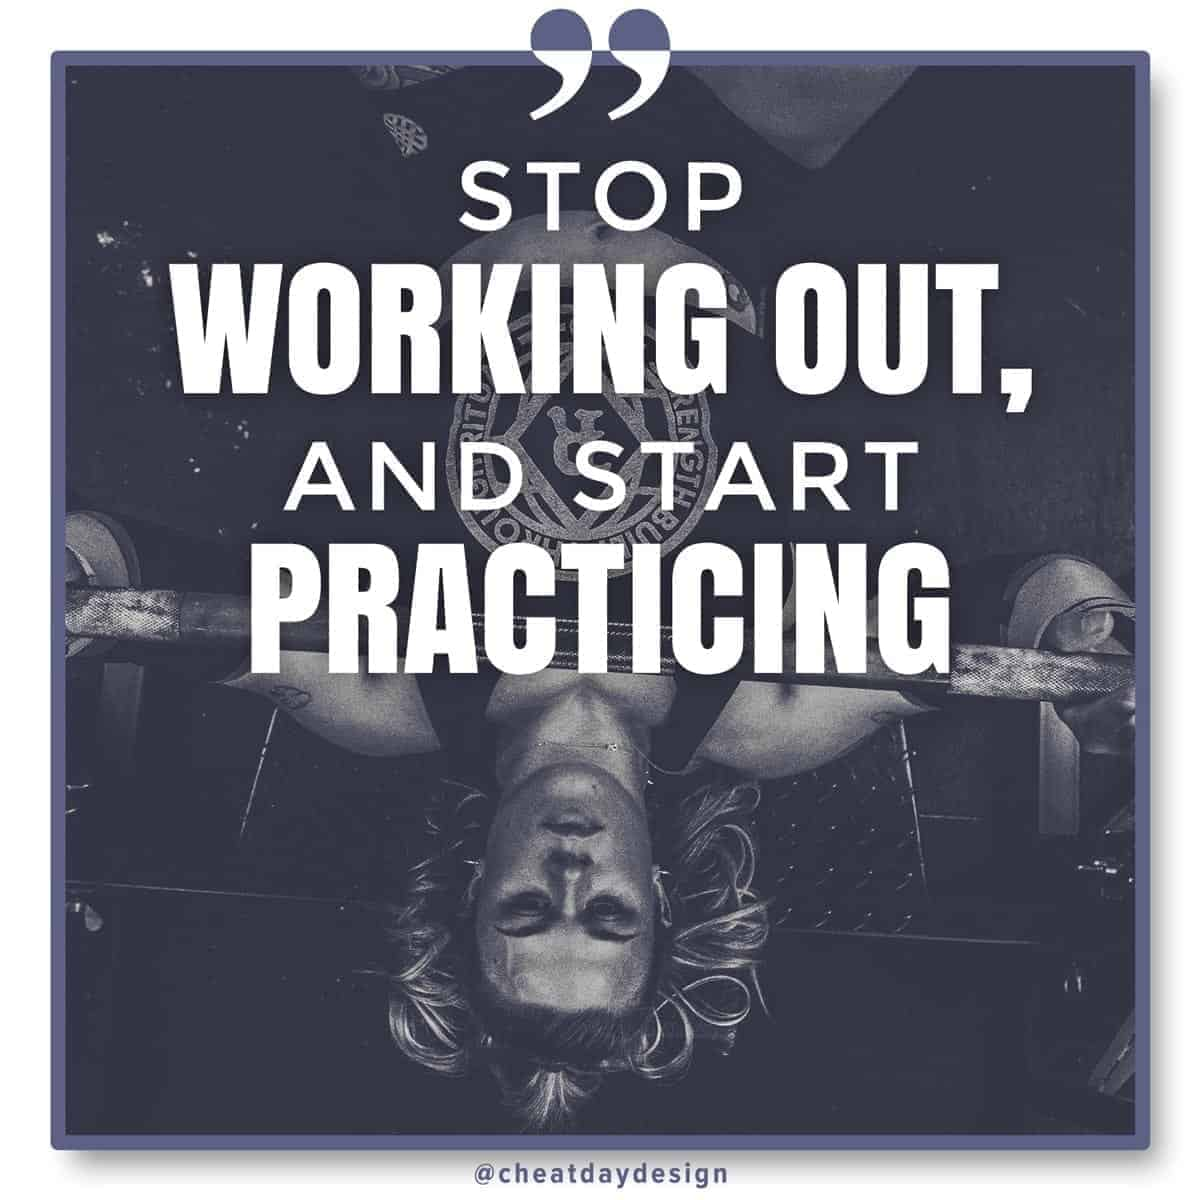 Stop working out, start practicing